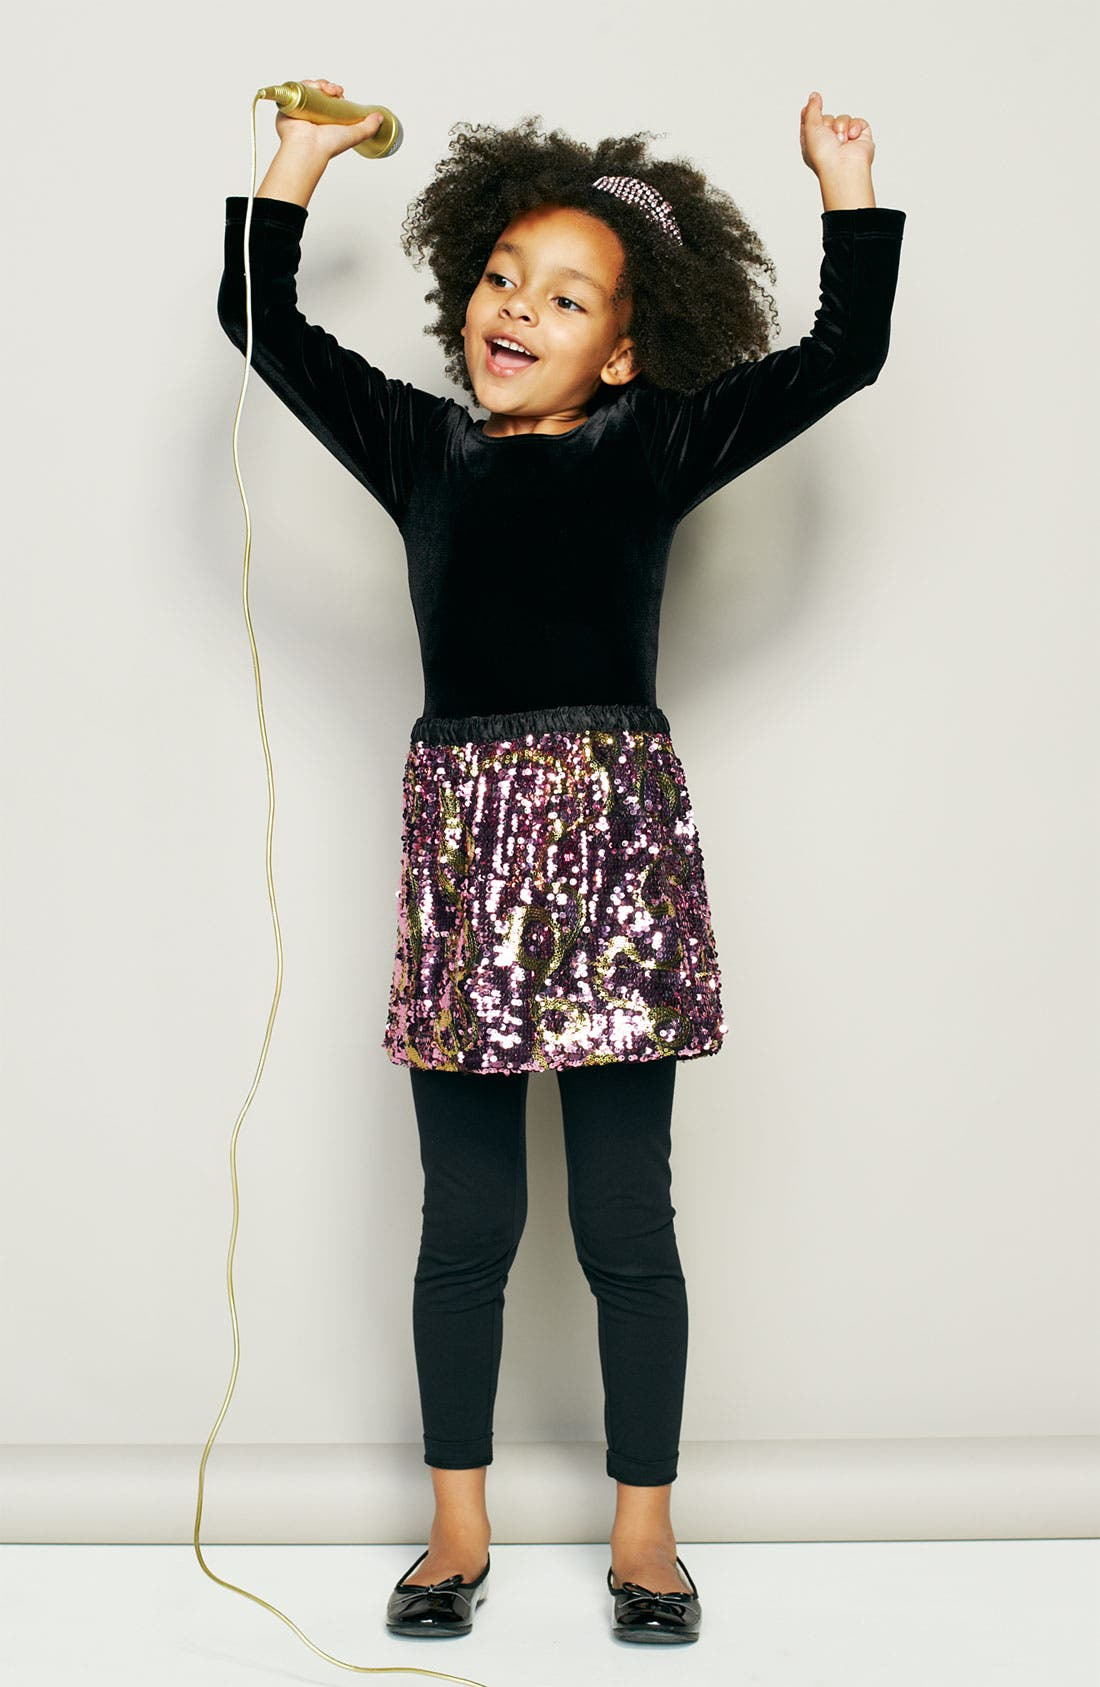 Alternate Image 1 Selected - Mignone Dress & Nordstrom Footless Tights (Little Girls)